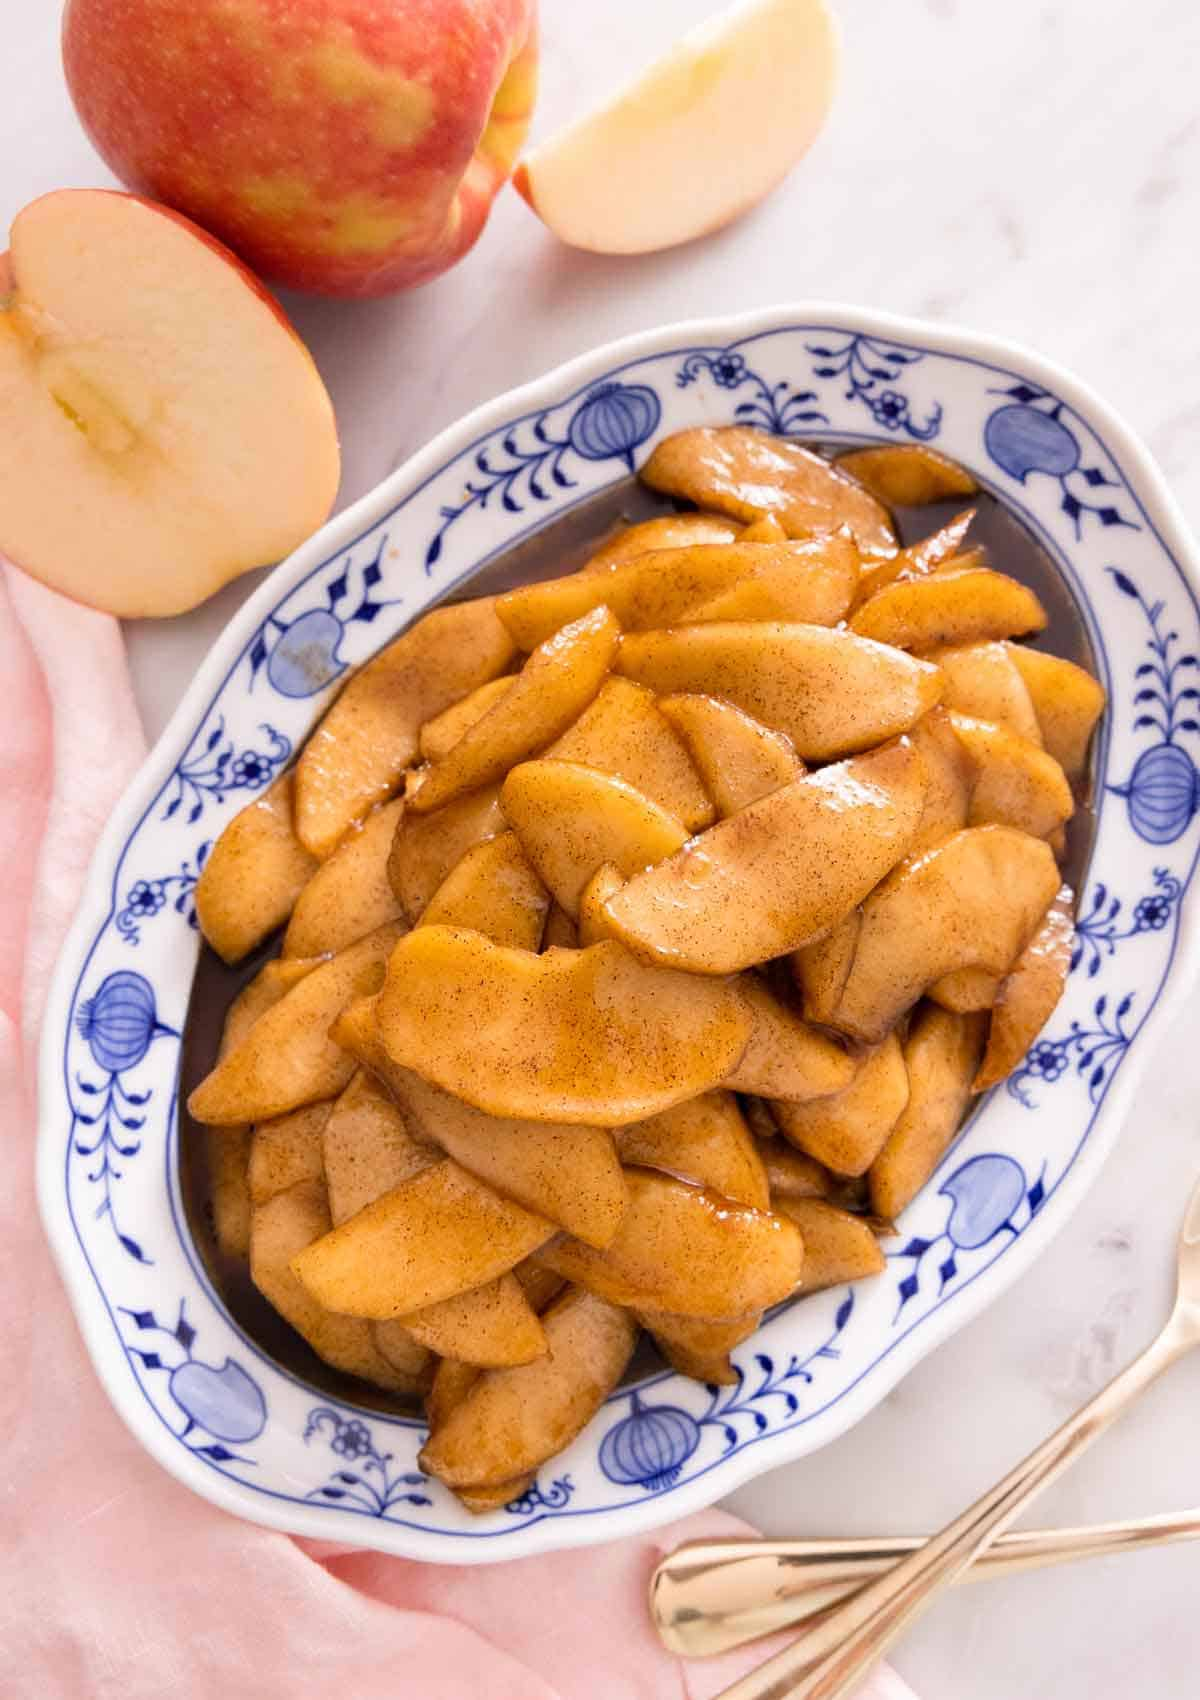 An oval platter of fried apples beside a cut apple, pink linen napkin, and two forks.